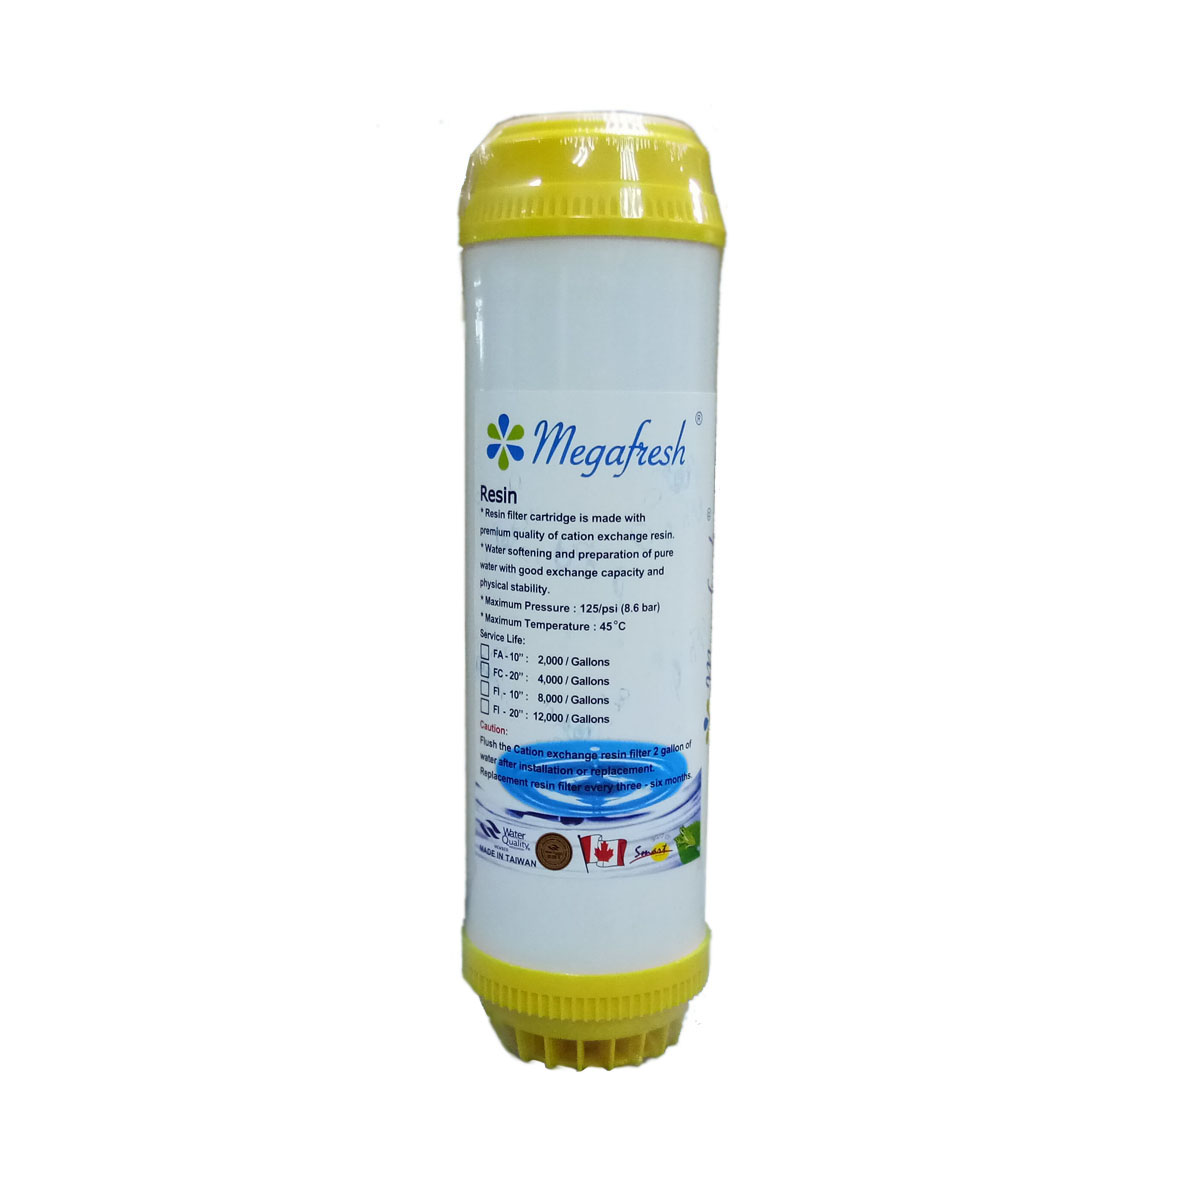 Fa Resin Megafresh Water Filtration And Purifier